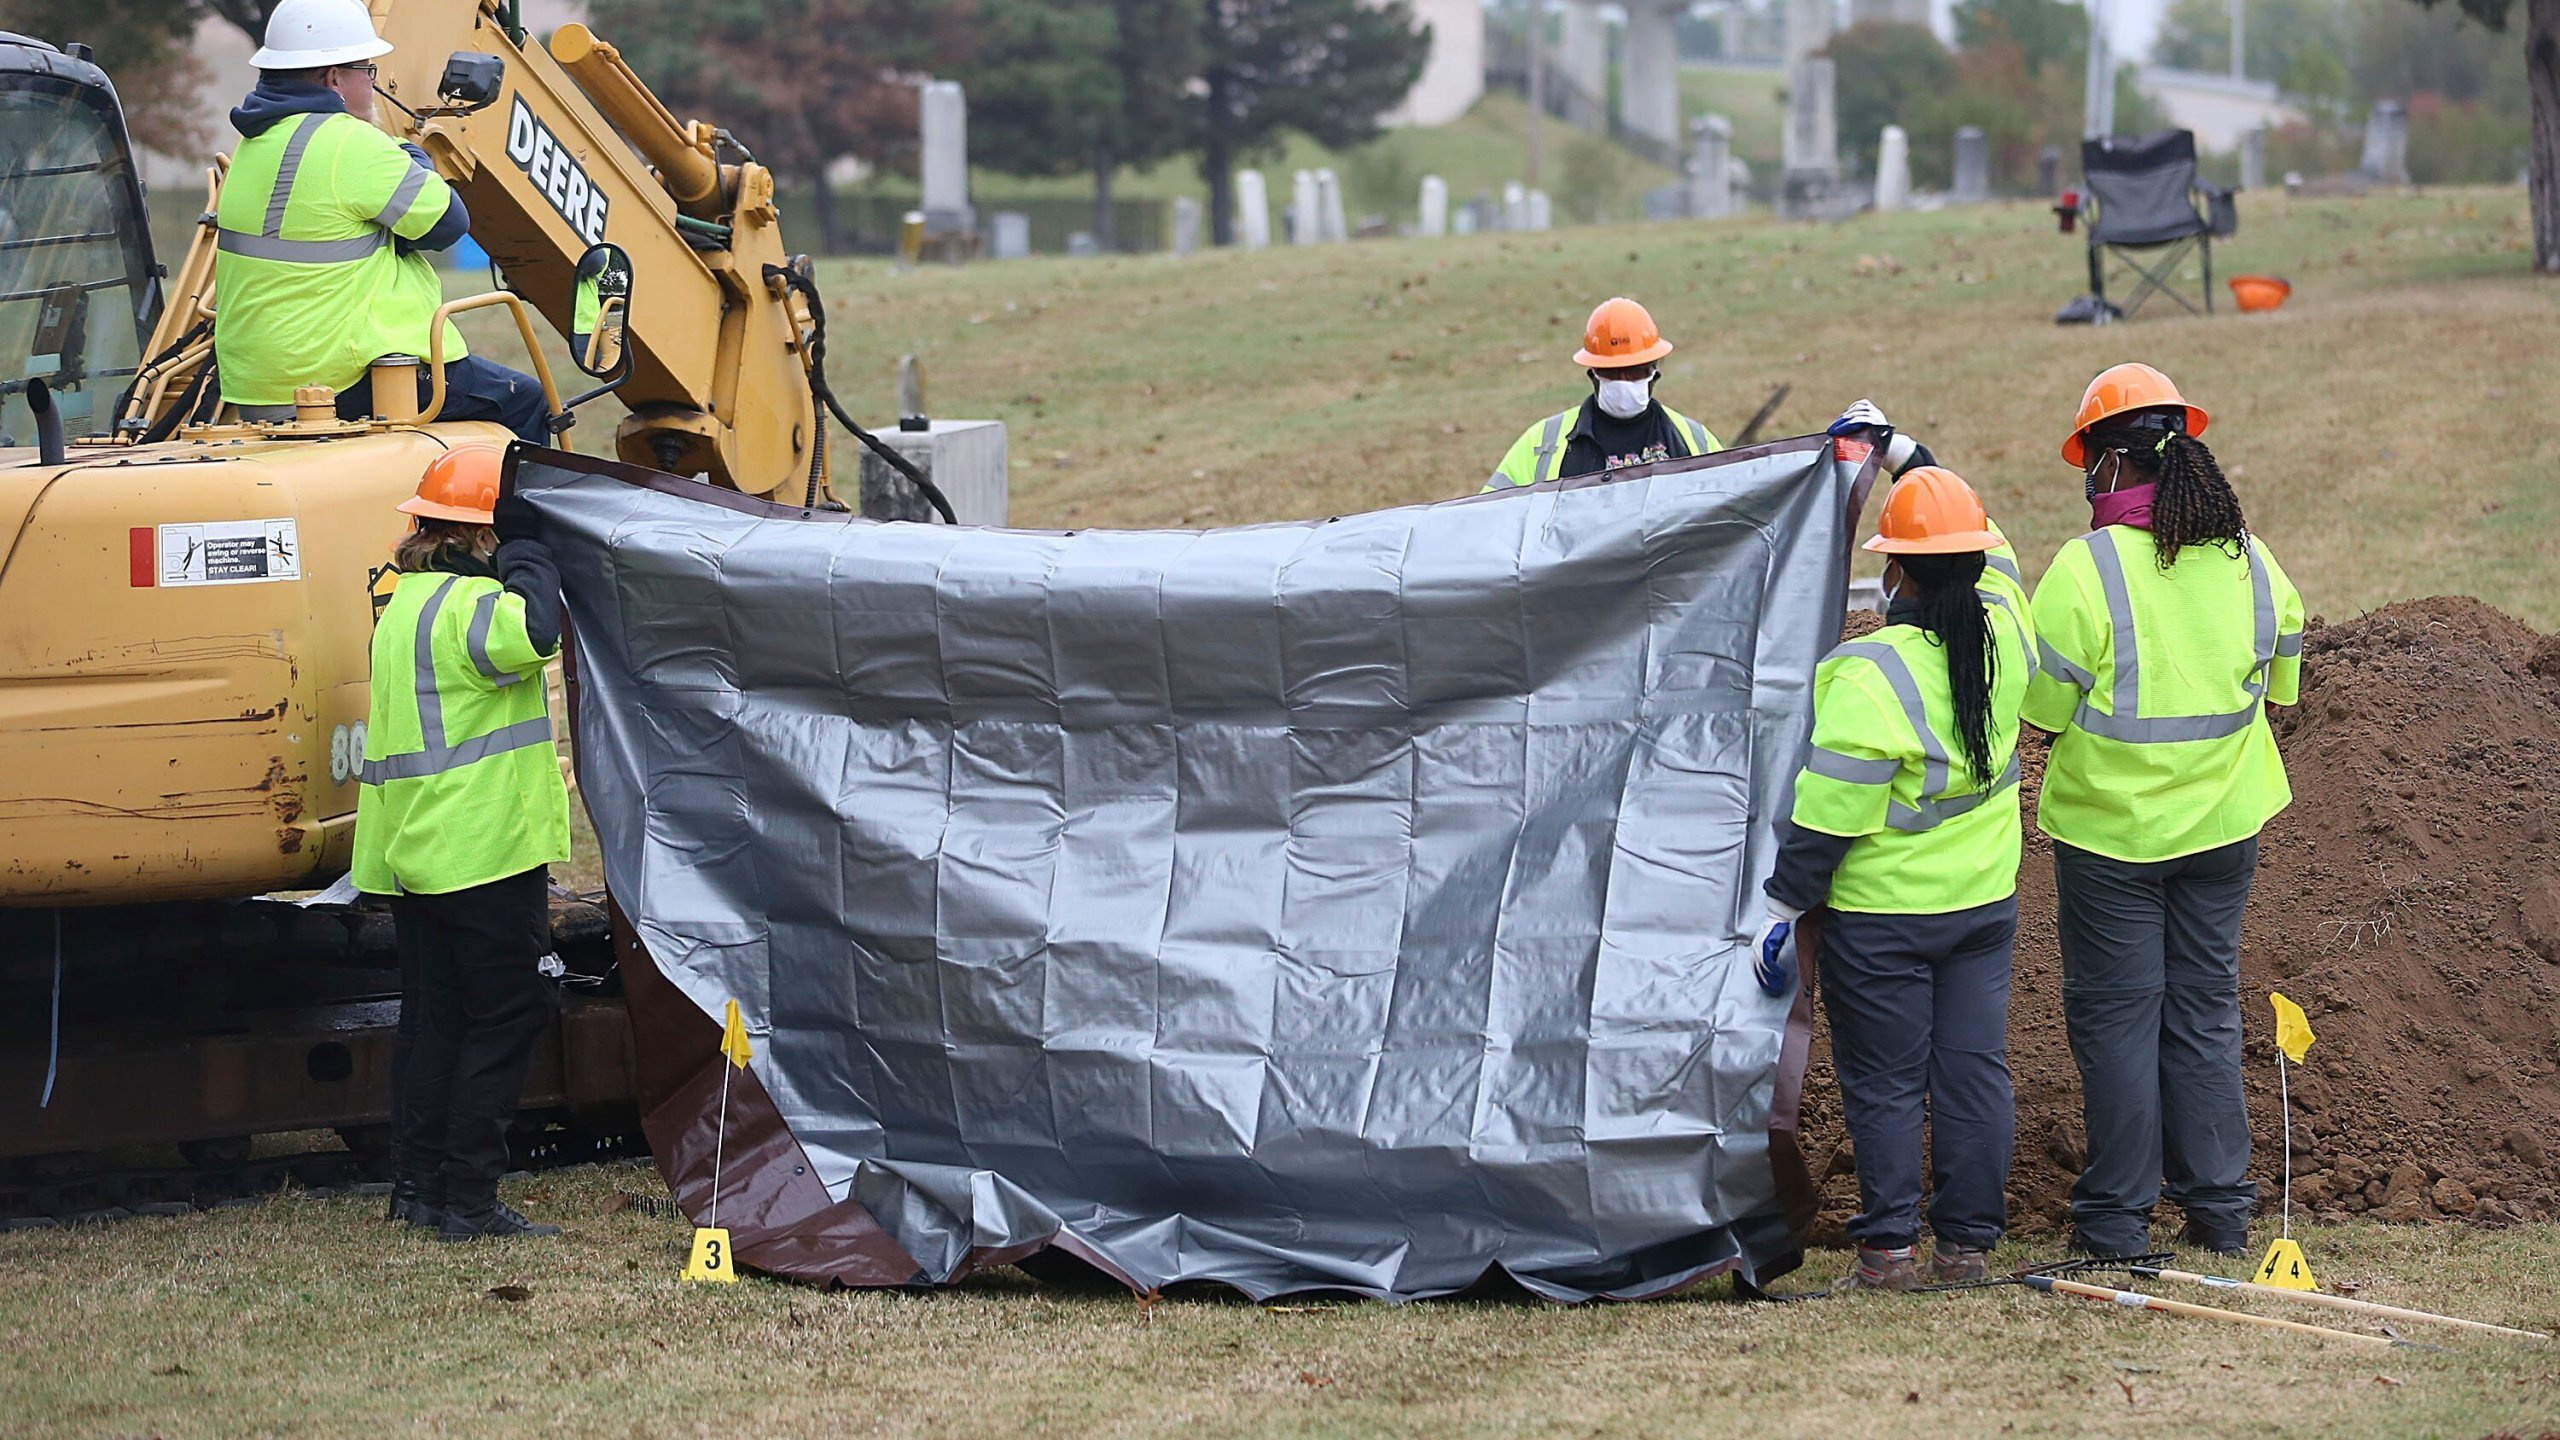 Workers hold up tarps to block spectators' views during a second test excavation and core sampling, Tuesday, Oct. 20, 2020, in the search for remains at Oaklawn Cemetery in Tulsa, Okla., from the 1921 Tulsa Race Massacre. (Mike Simons/Tulsa World via AP)